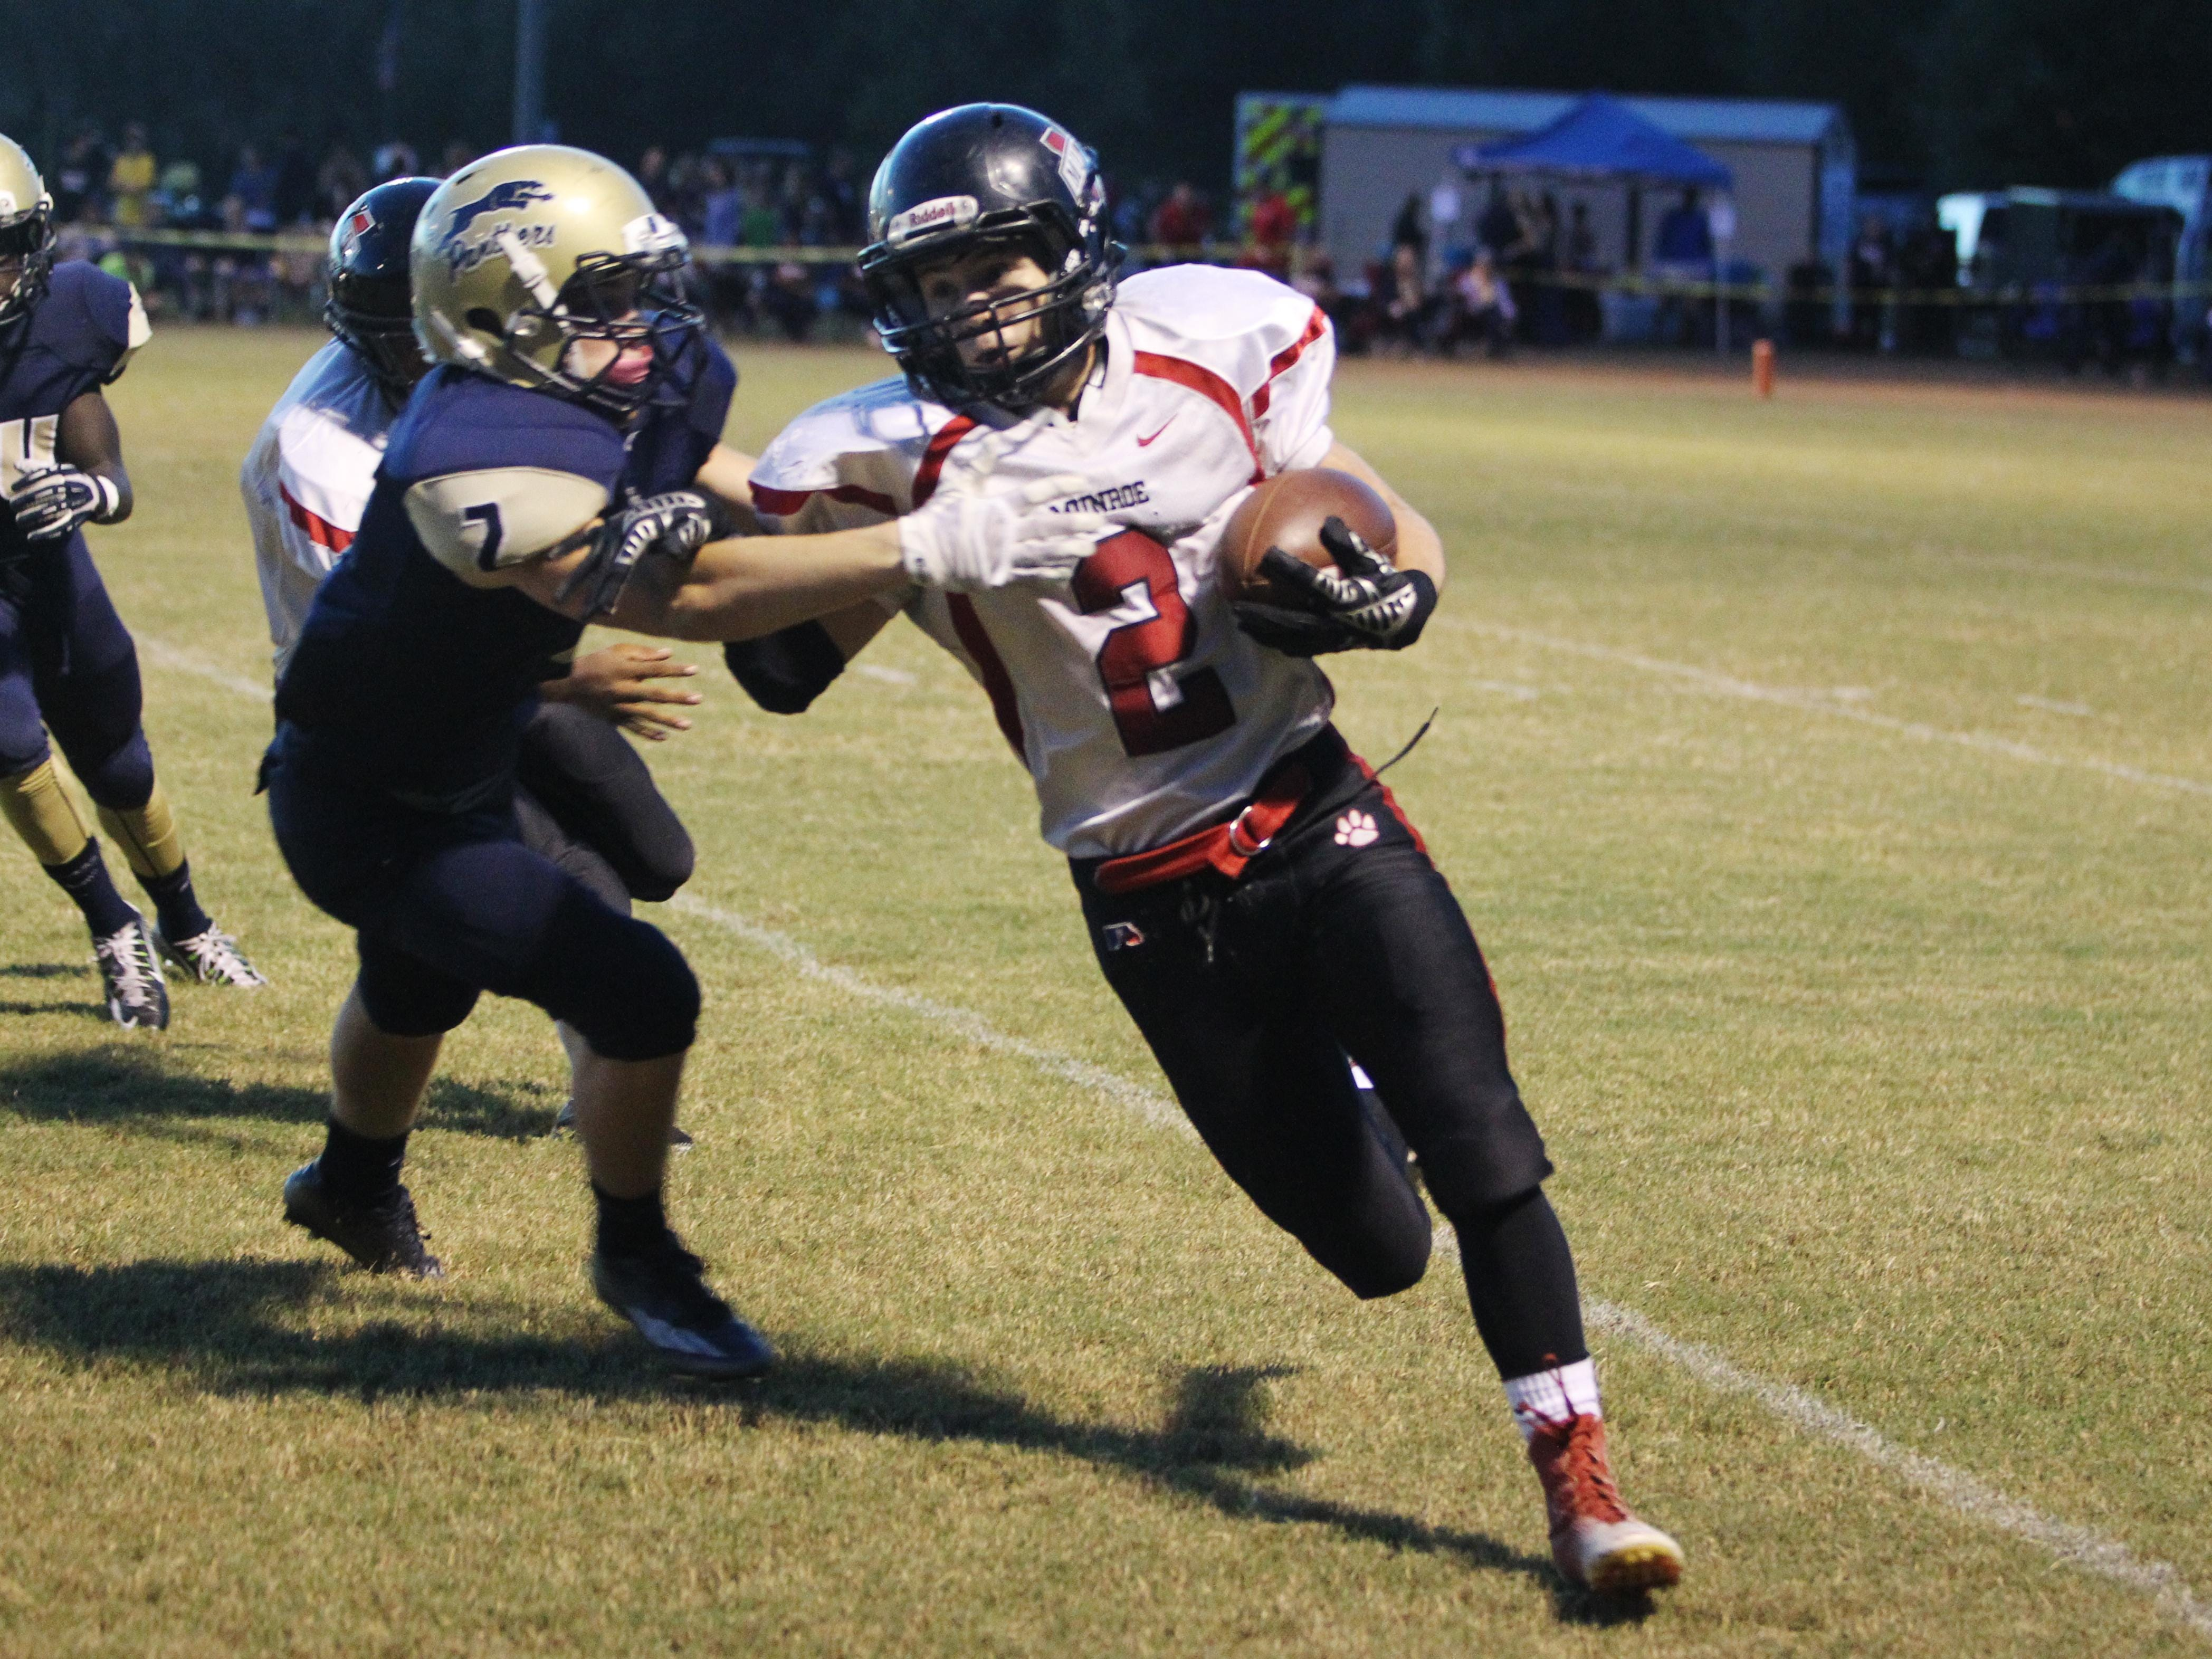 Munroe High wide receiver Hunter Ventry sprints to the outside as John Paul II safety Sam Smith closes in for the tackle.